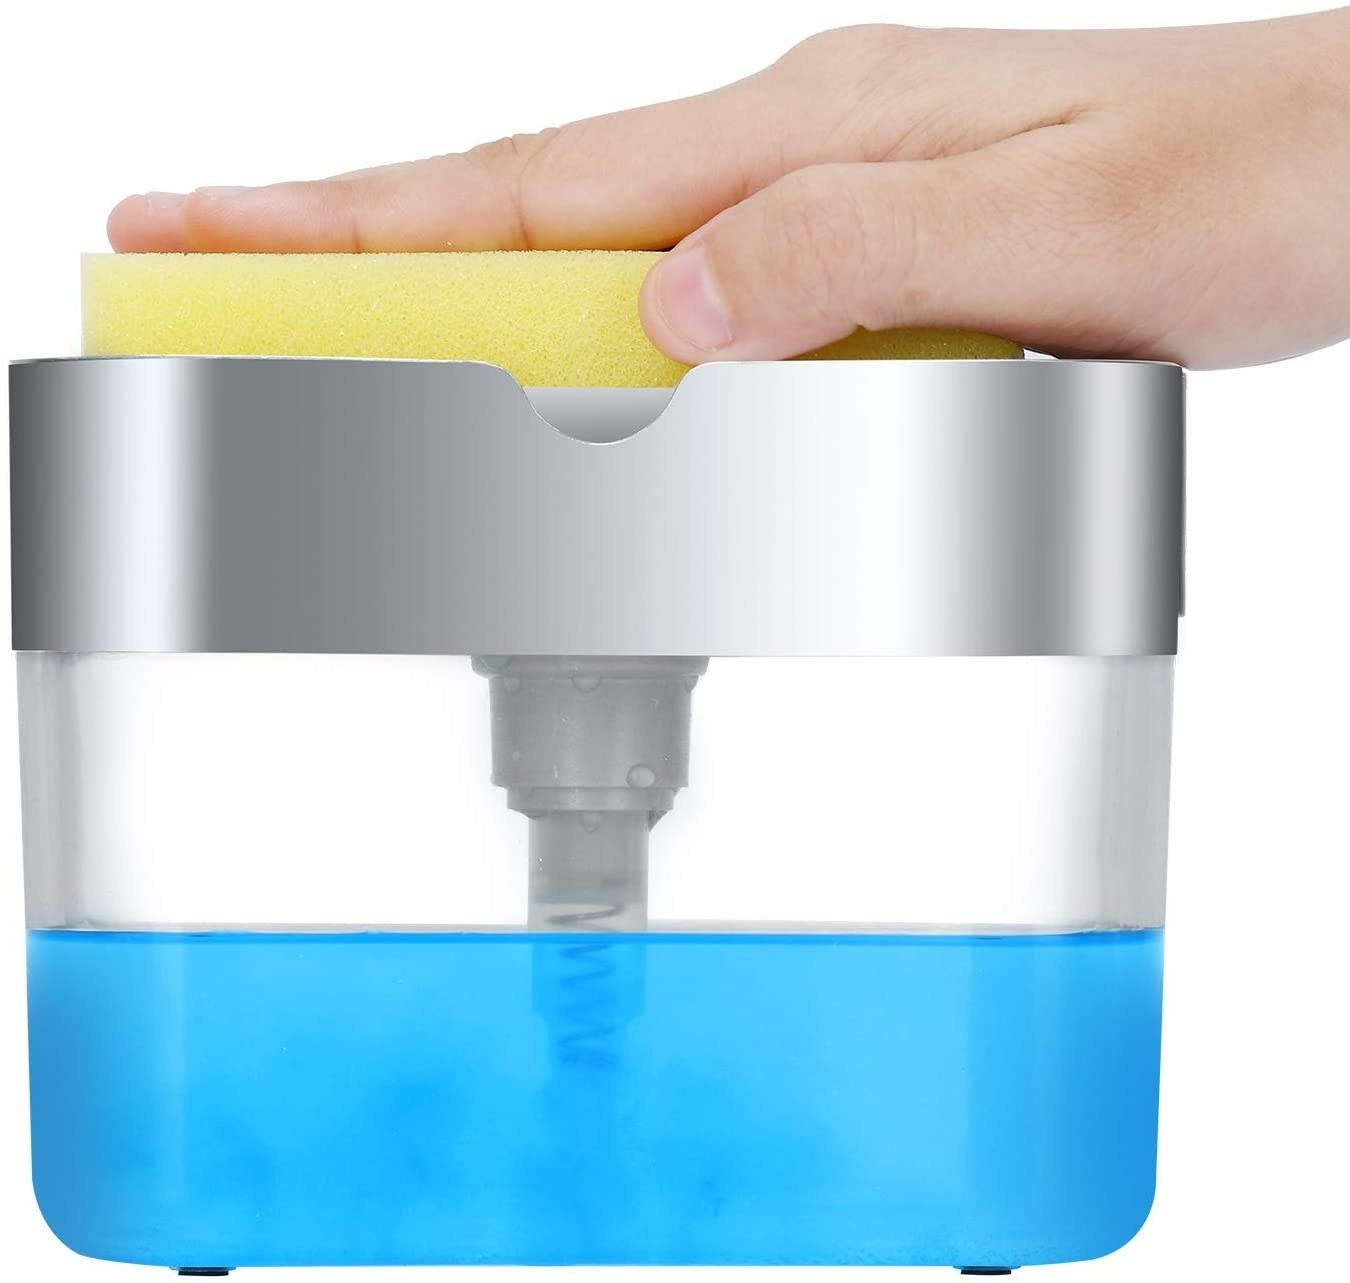 hand pushing down on a sponge in a caddy above the soap container